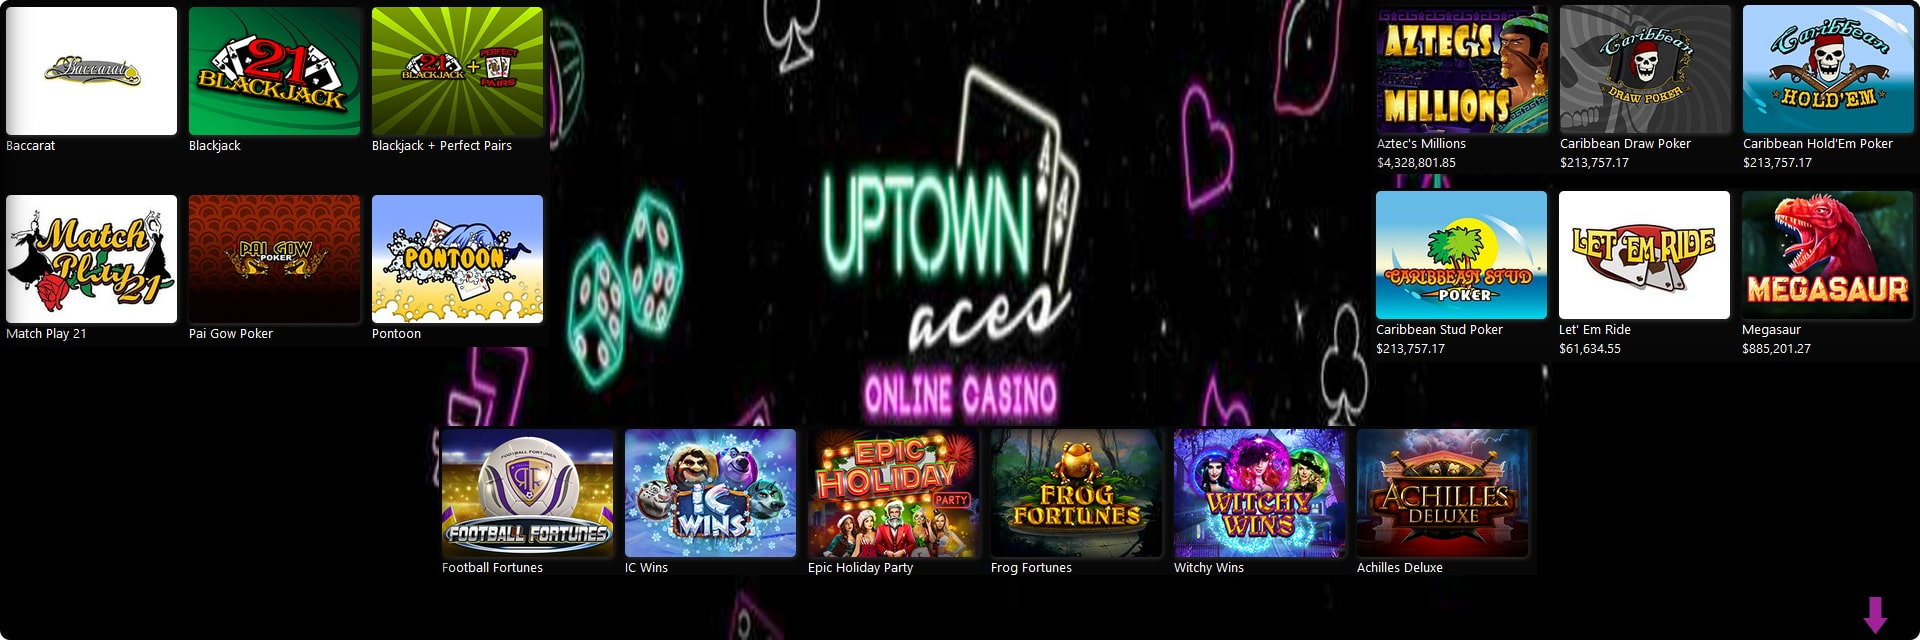 Uptown Aces Casino Slots.